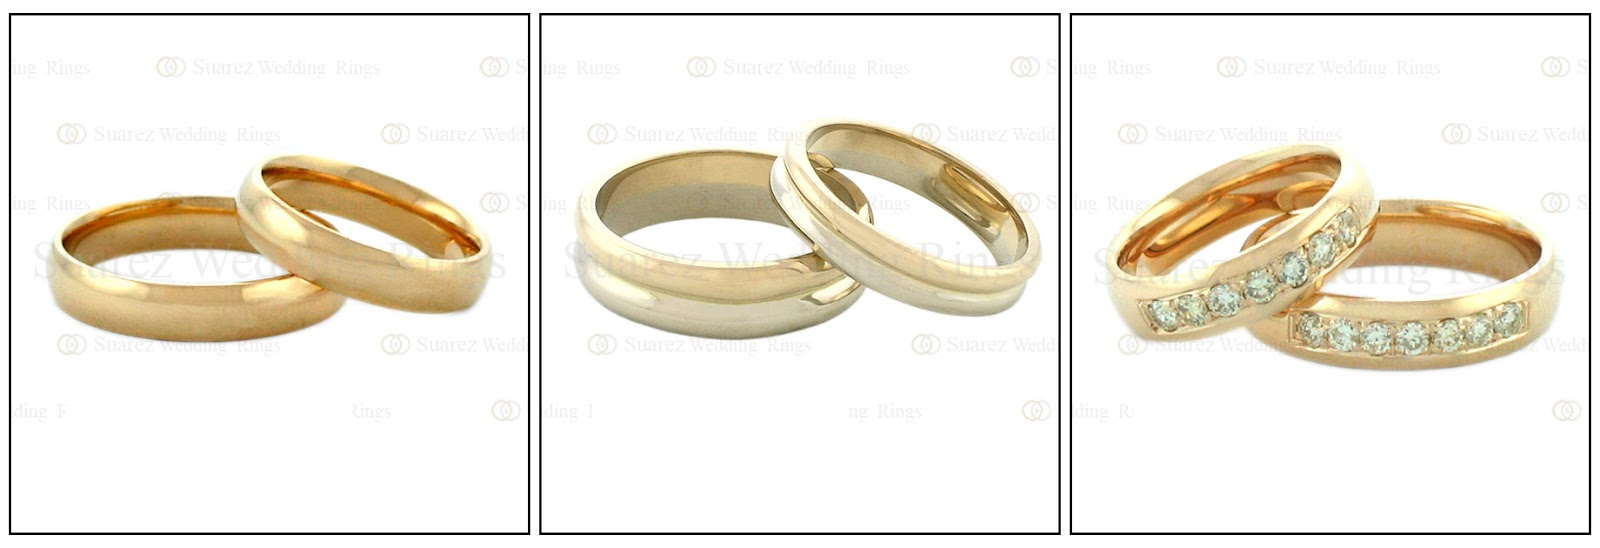 Not Expensive Zsolt Wedding Rings Wedding Ring Cost Philippines